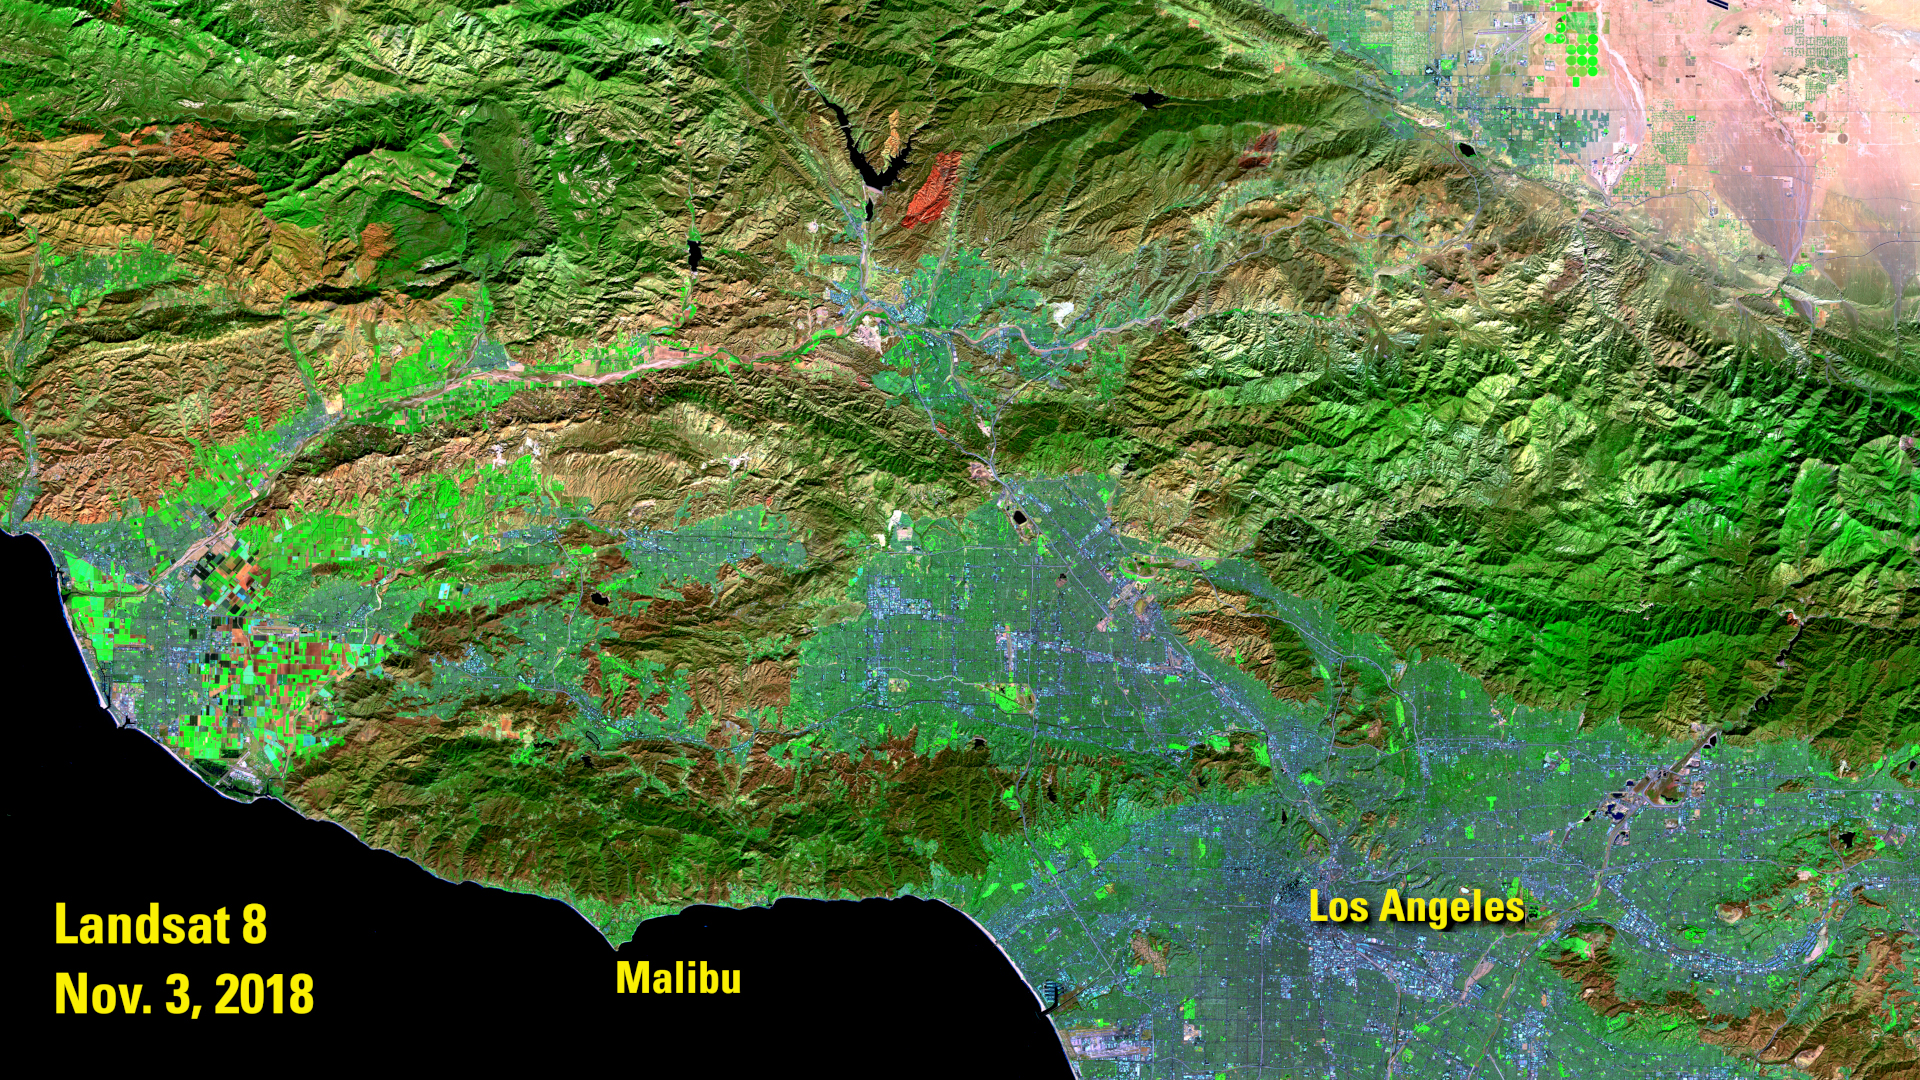 Landsat 8 image of Malibu, California